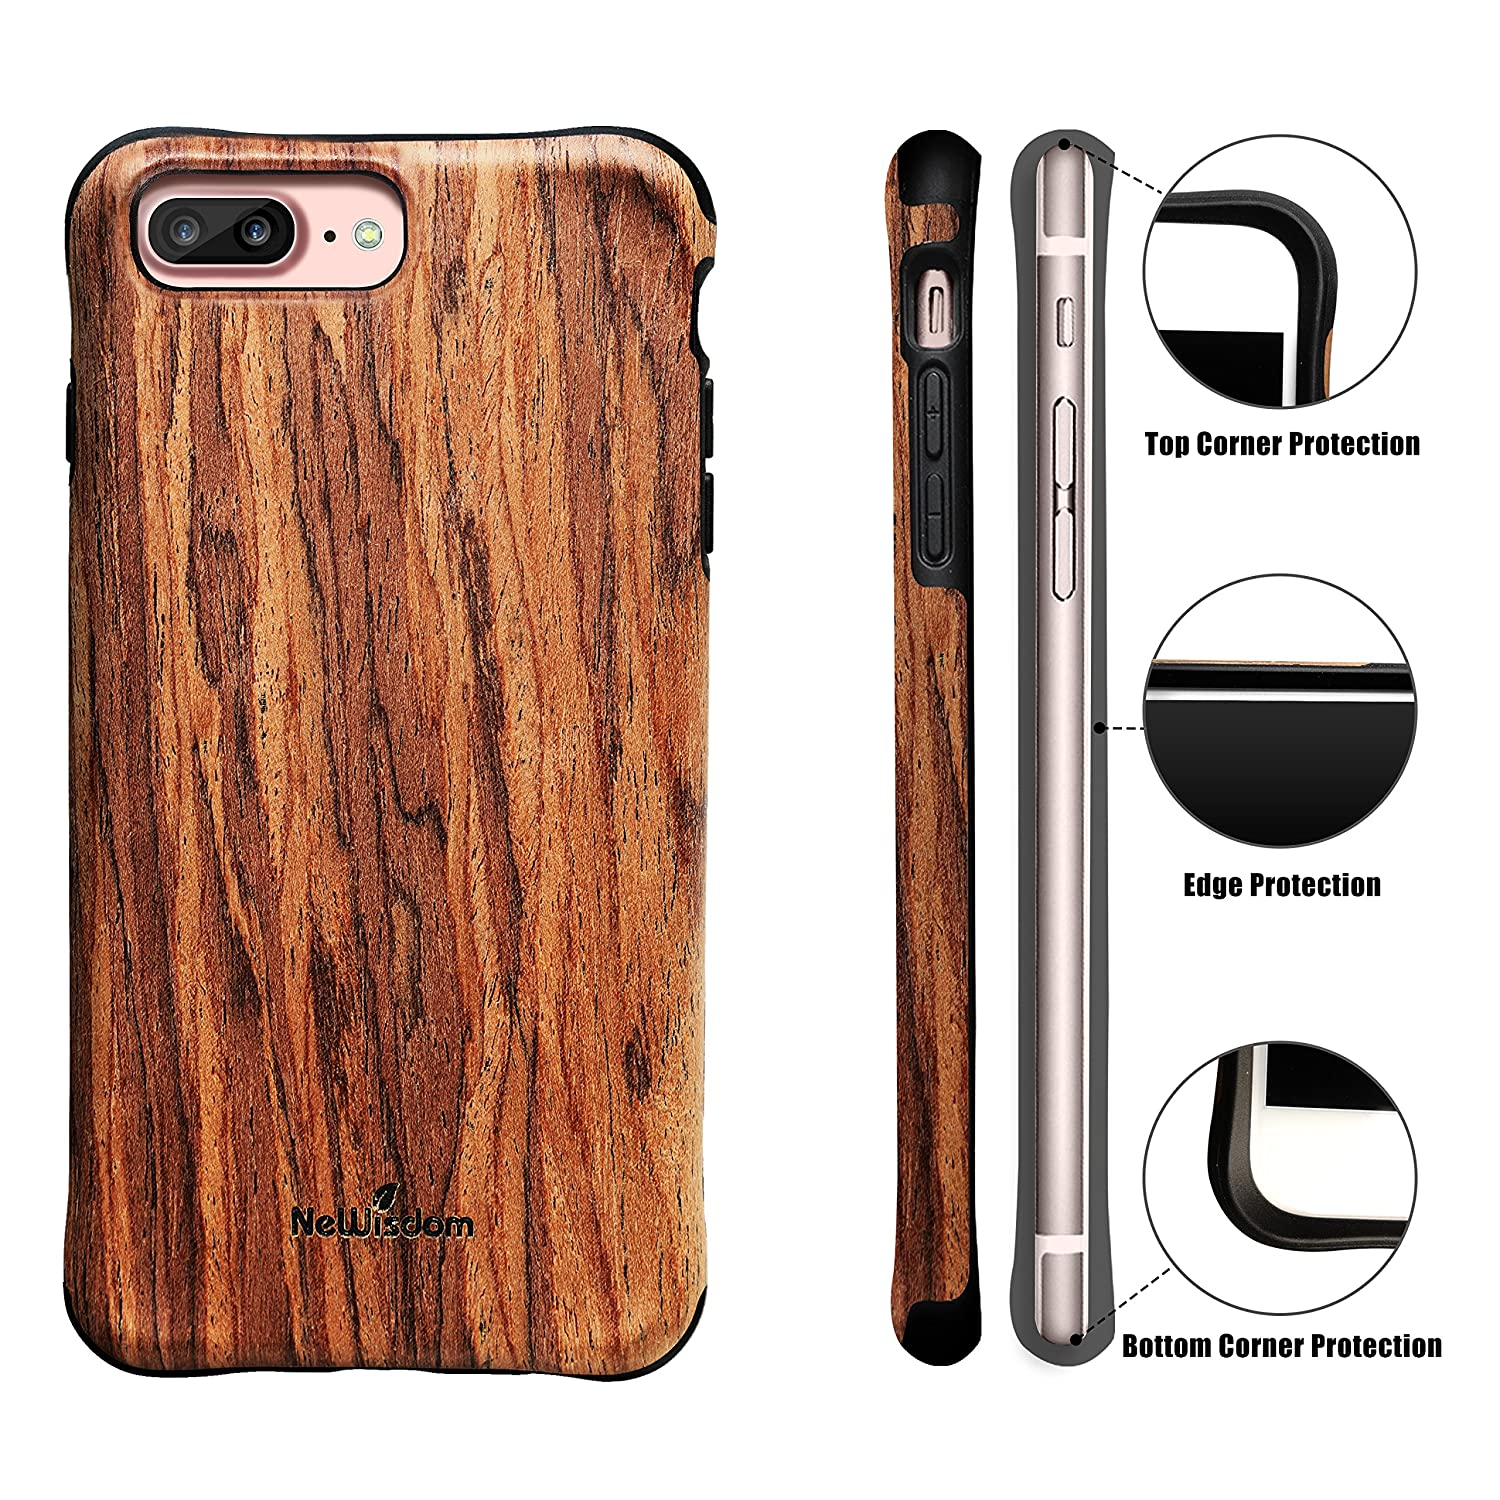 NeWisdom iPhone 8 Plus case Wood, iPhone 7 Plus Case Wood, Shockproof Unique Hybrid Rubberized Cover [ Wood Over Rubber] Soft Real Wood Case for Apple iPhone 8Plus iPhone 7Plus – Sandalwood - iPhone 8 Plus Case